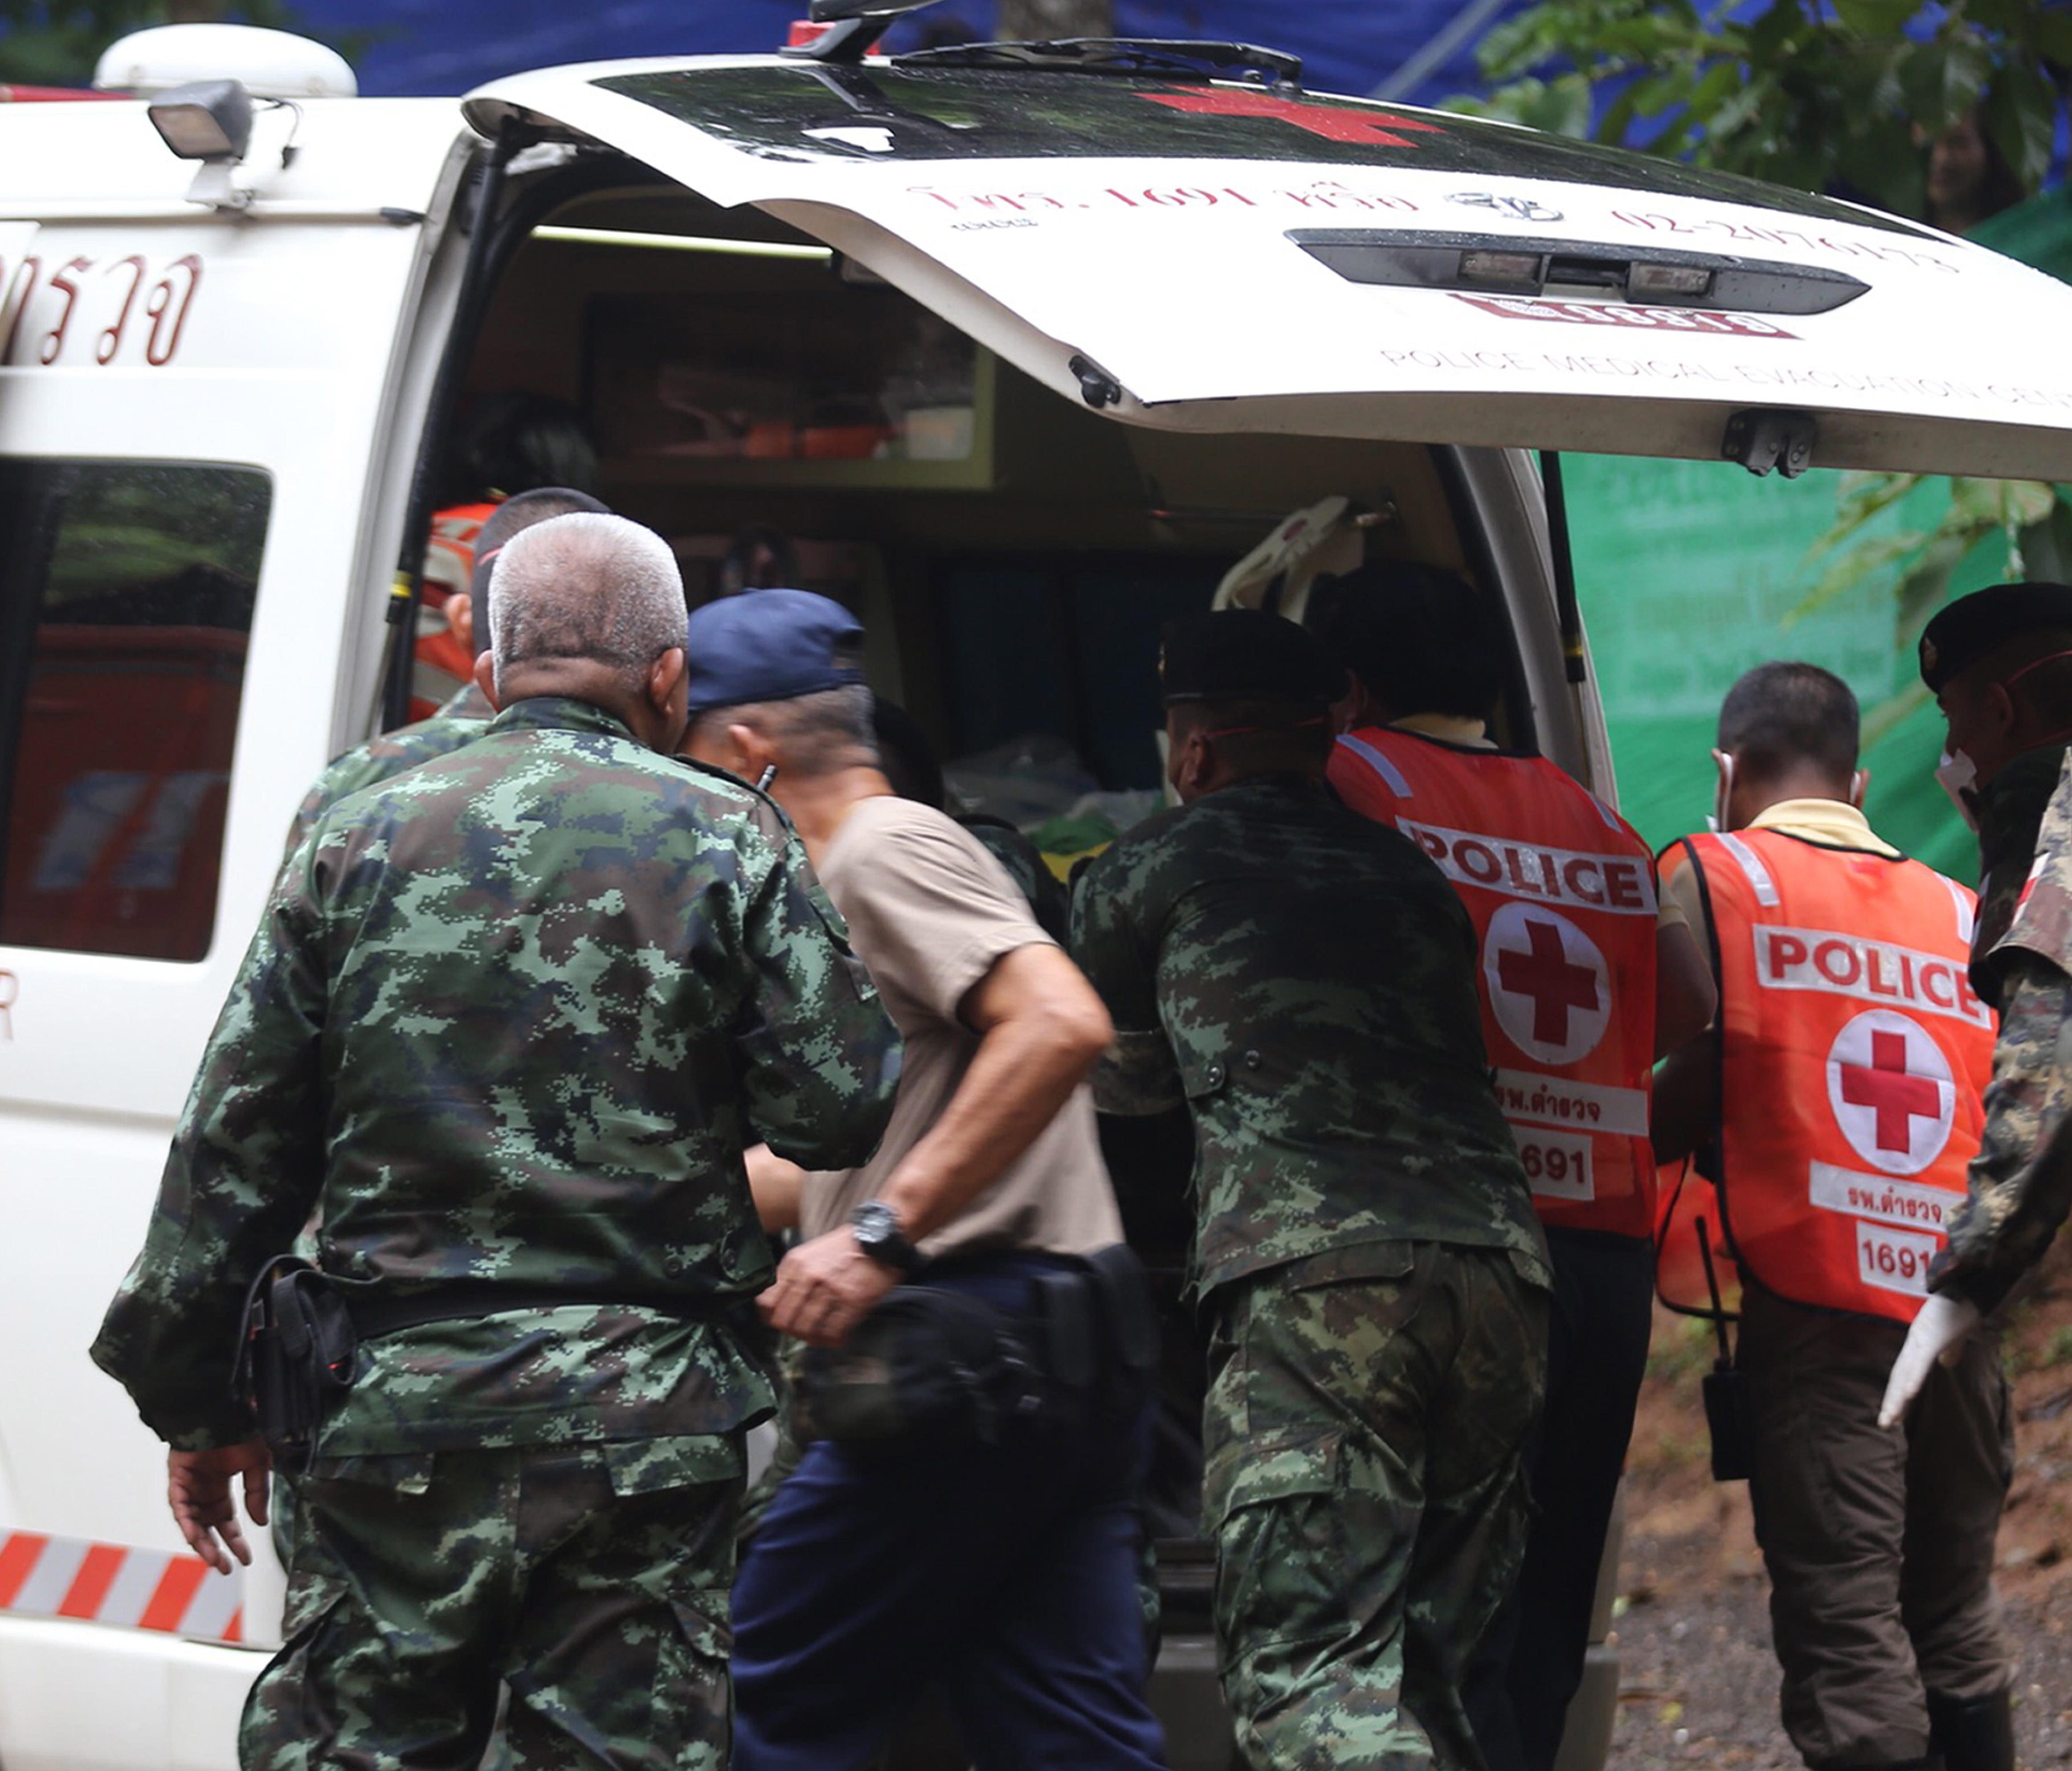 A handout photo made available by the Chiang Rai Public Relations Office shows Thai authorities placing a rescued boy in an ambulance for transportation from Tham Luang cave to a hospital, in Khun Nam Nang Non Forest Park, Chiang Rai province, Thaila